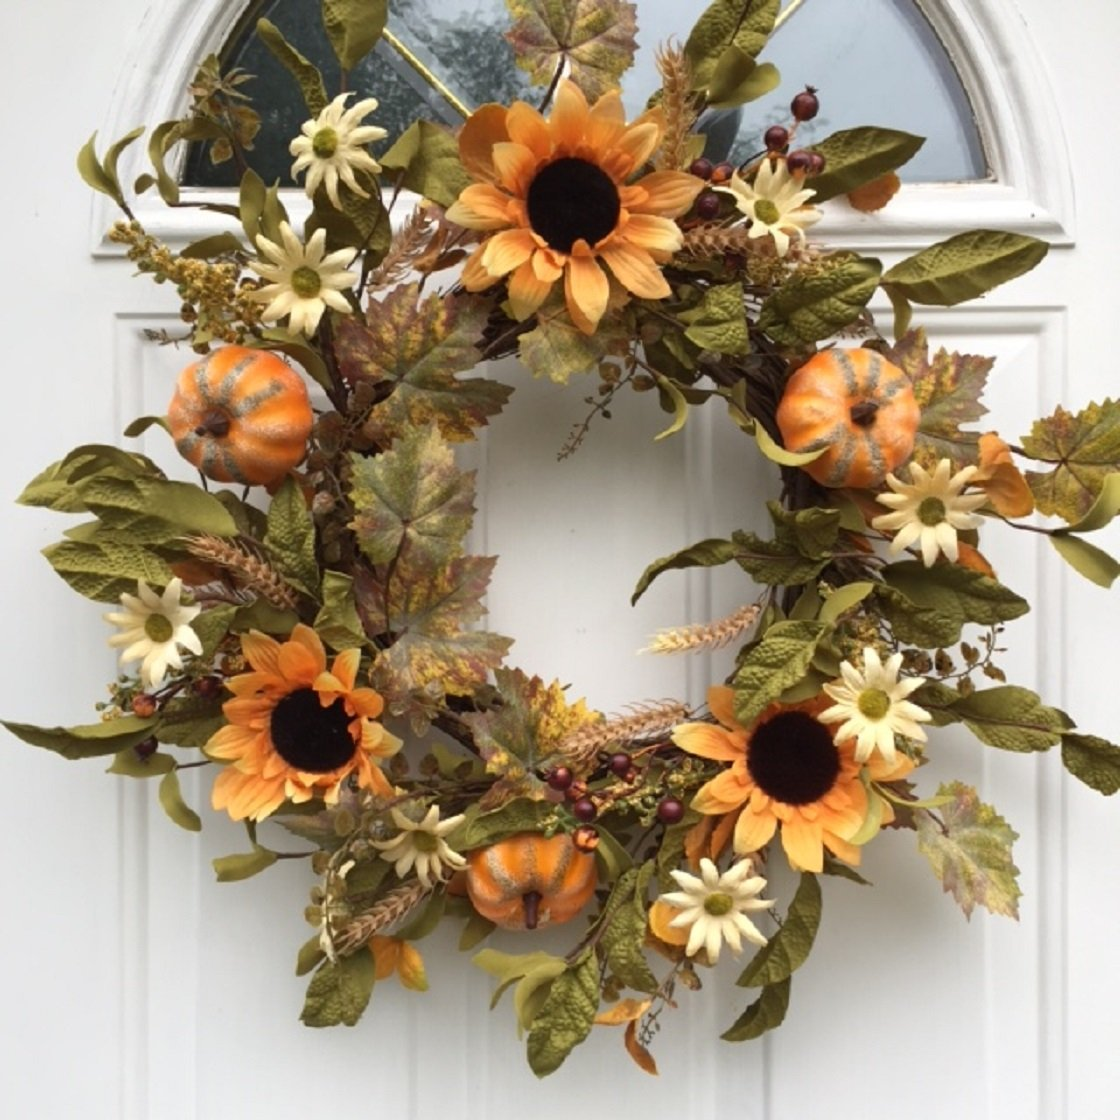 Harvest Hollows Fall Wreath 22 Inch Handmade with Sunflowers Pumpkins Berries Wheat and Fall Leaves Front Door Wreath Thanksgiving Decoration